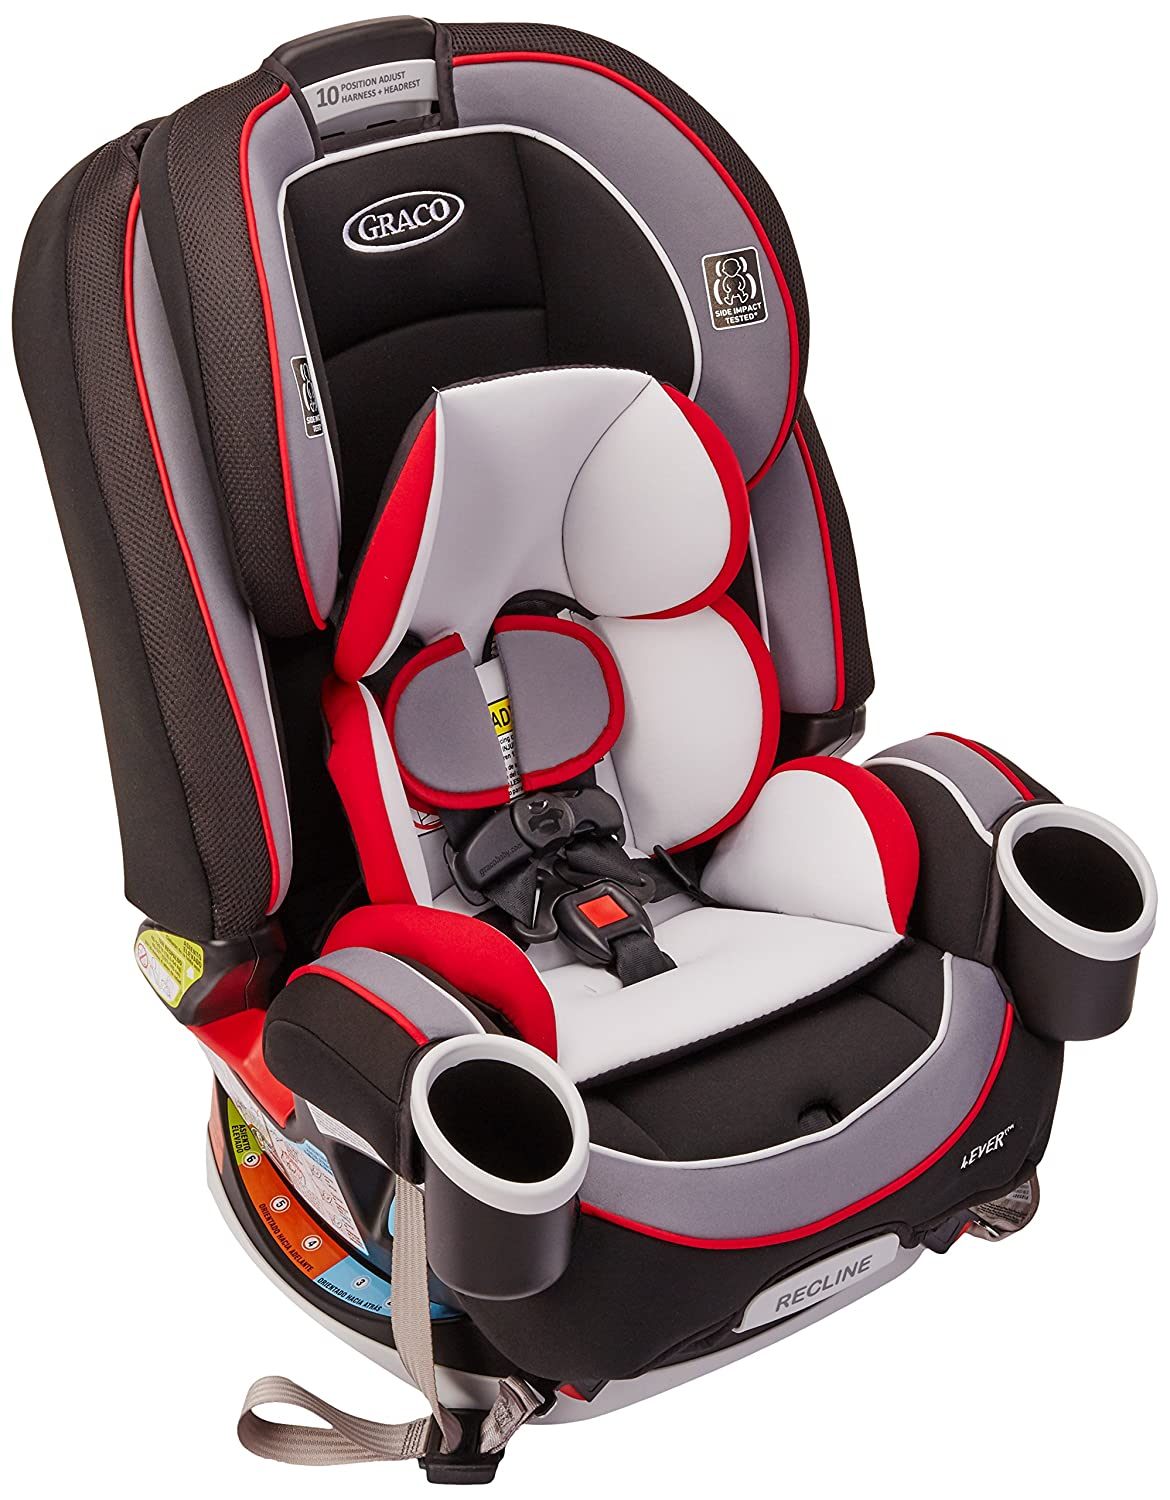 Amazon.com  Graco 4ever All-in-One Convertible Car Seat Cougar  Baby  sc 1 st  Amazon.com & Amazon.com : Graco 4ever All-in-One Convertible Car Seat Cougar ... islam-shia.org